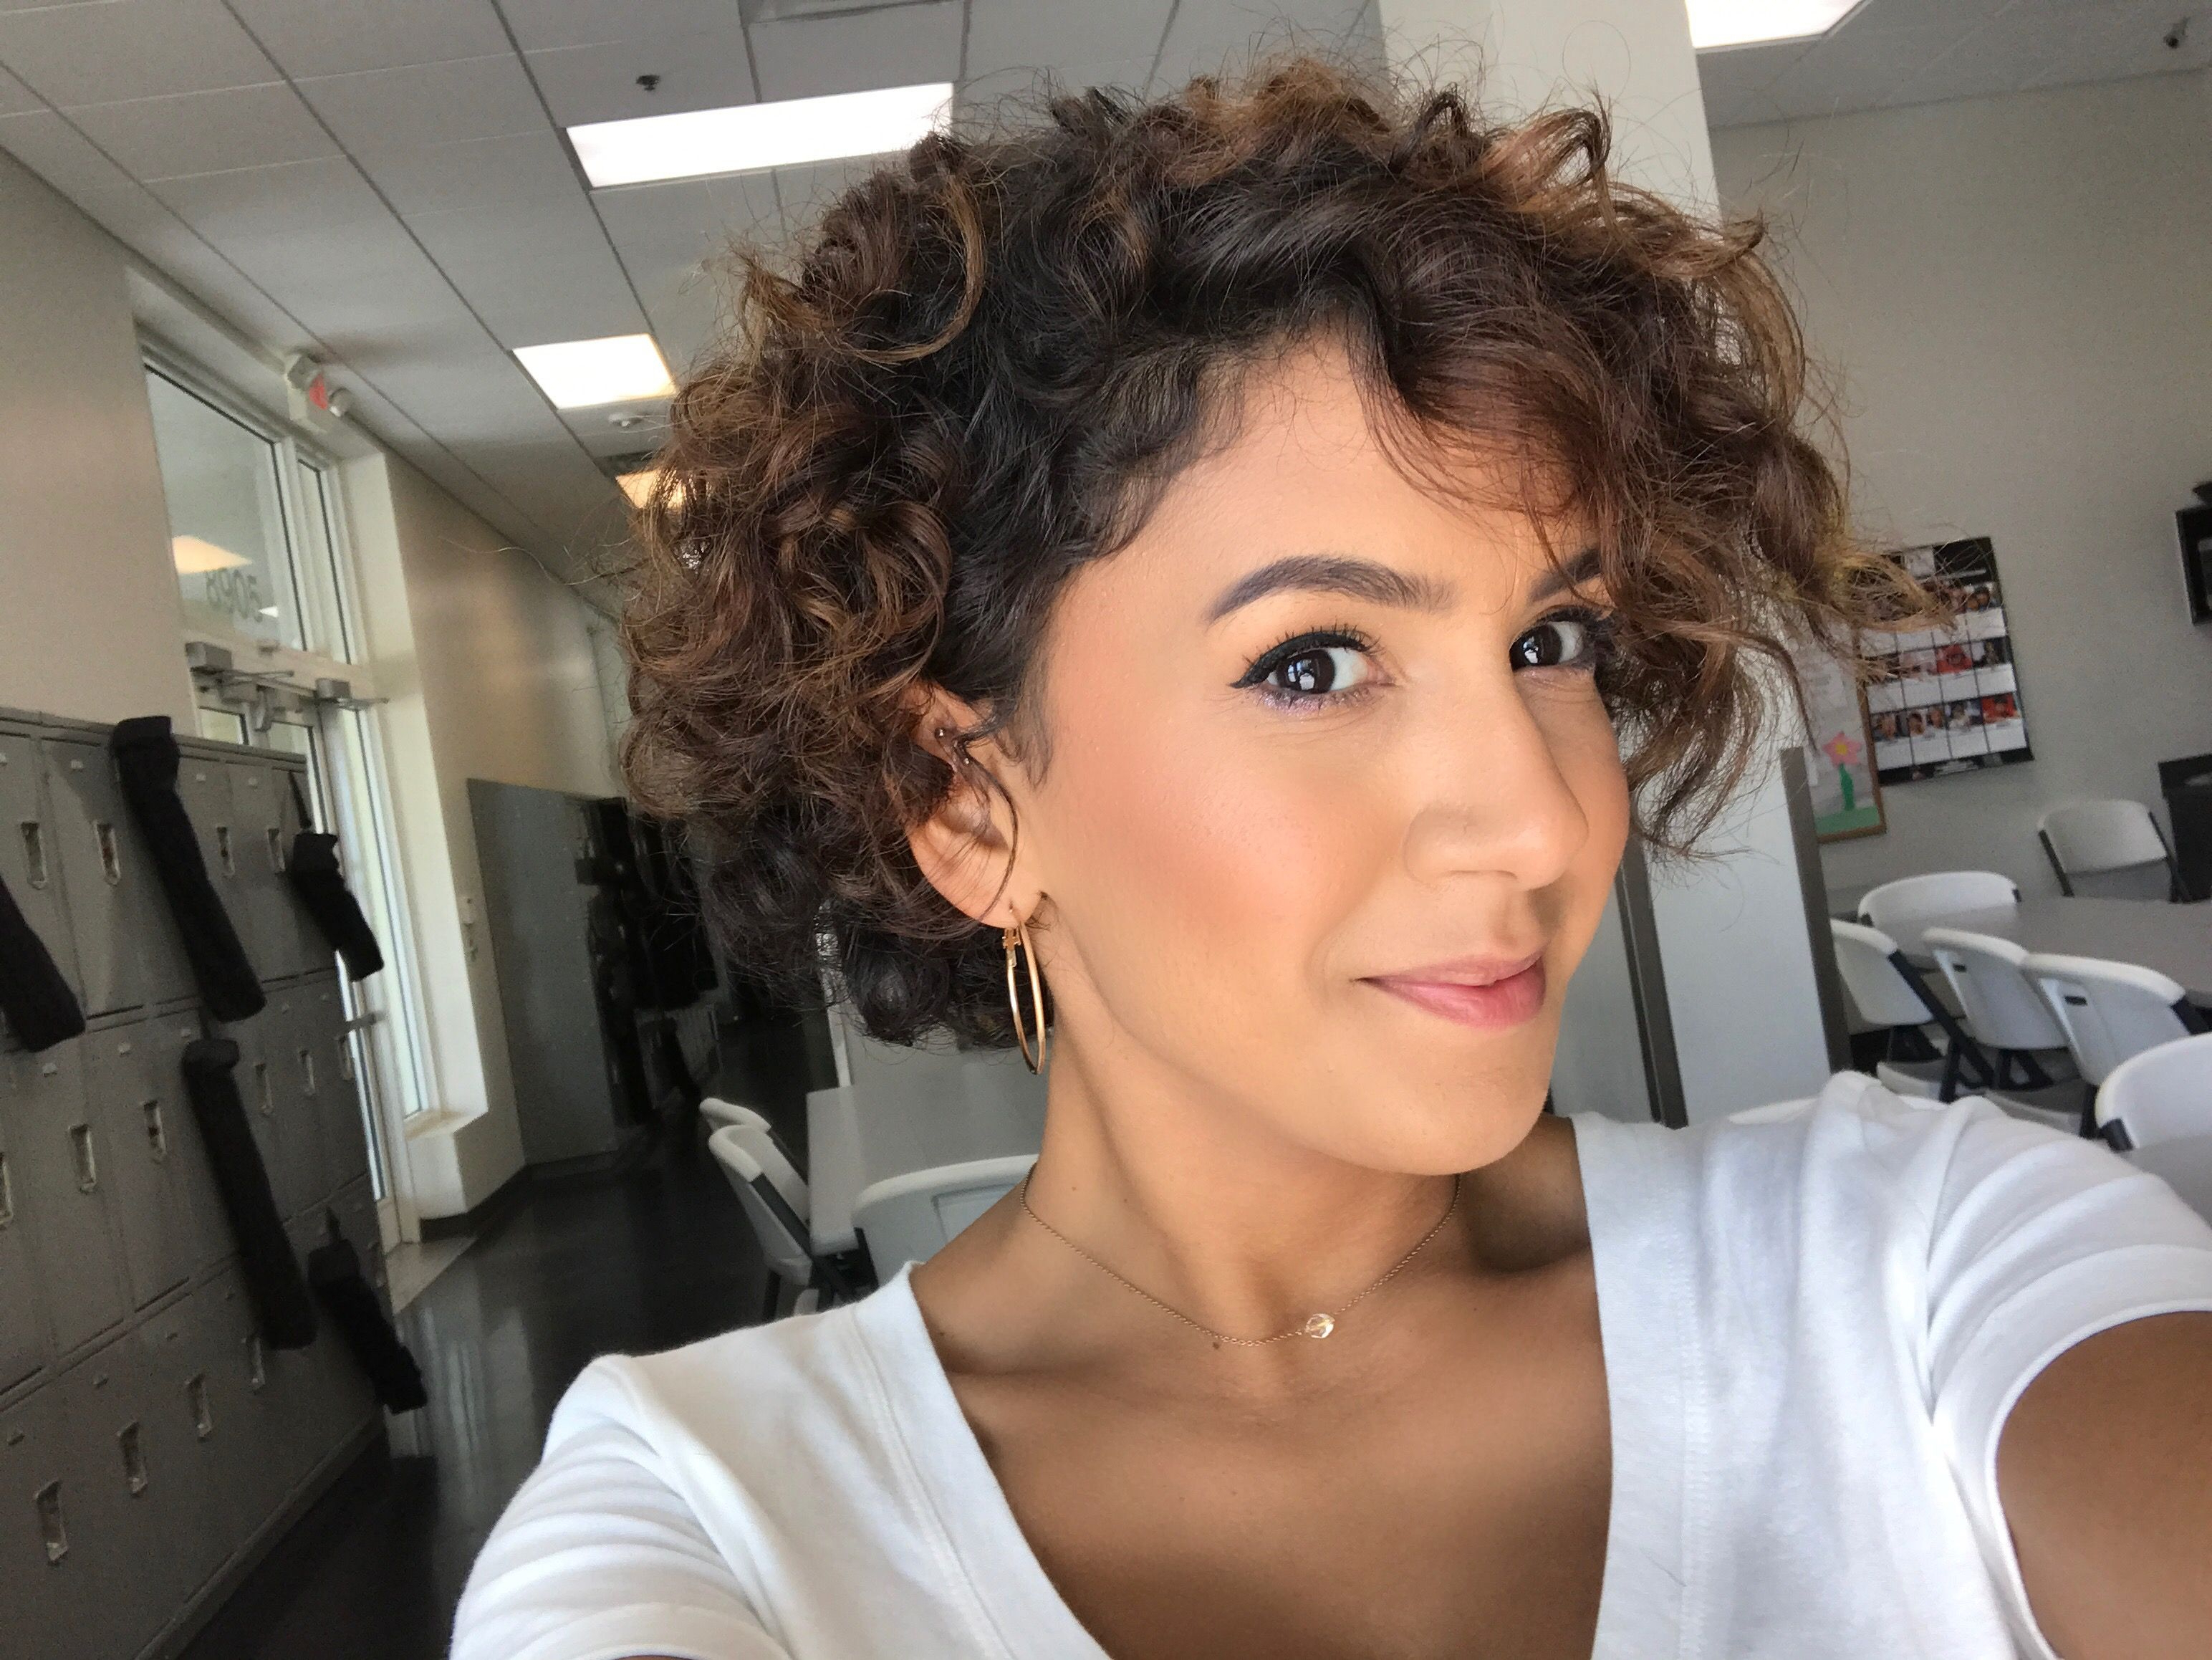 Amusing Short Curly Hairstyles Bob On Short Curly Bob Pixie Cut Inside Short Curly Hairstyles Tumblr (Gallery 2 of 25)